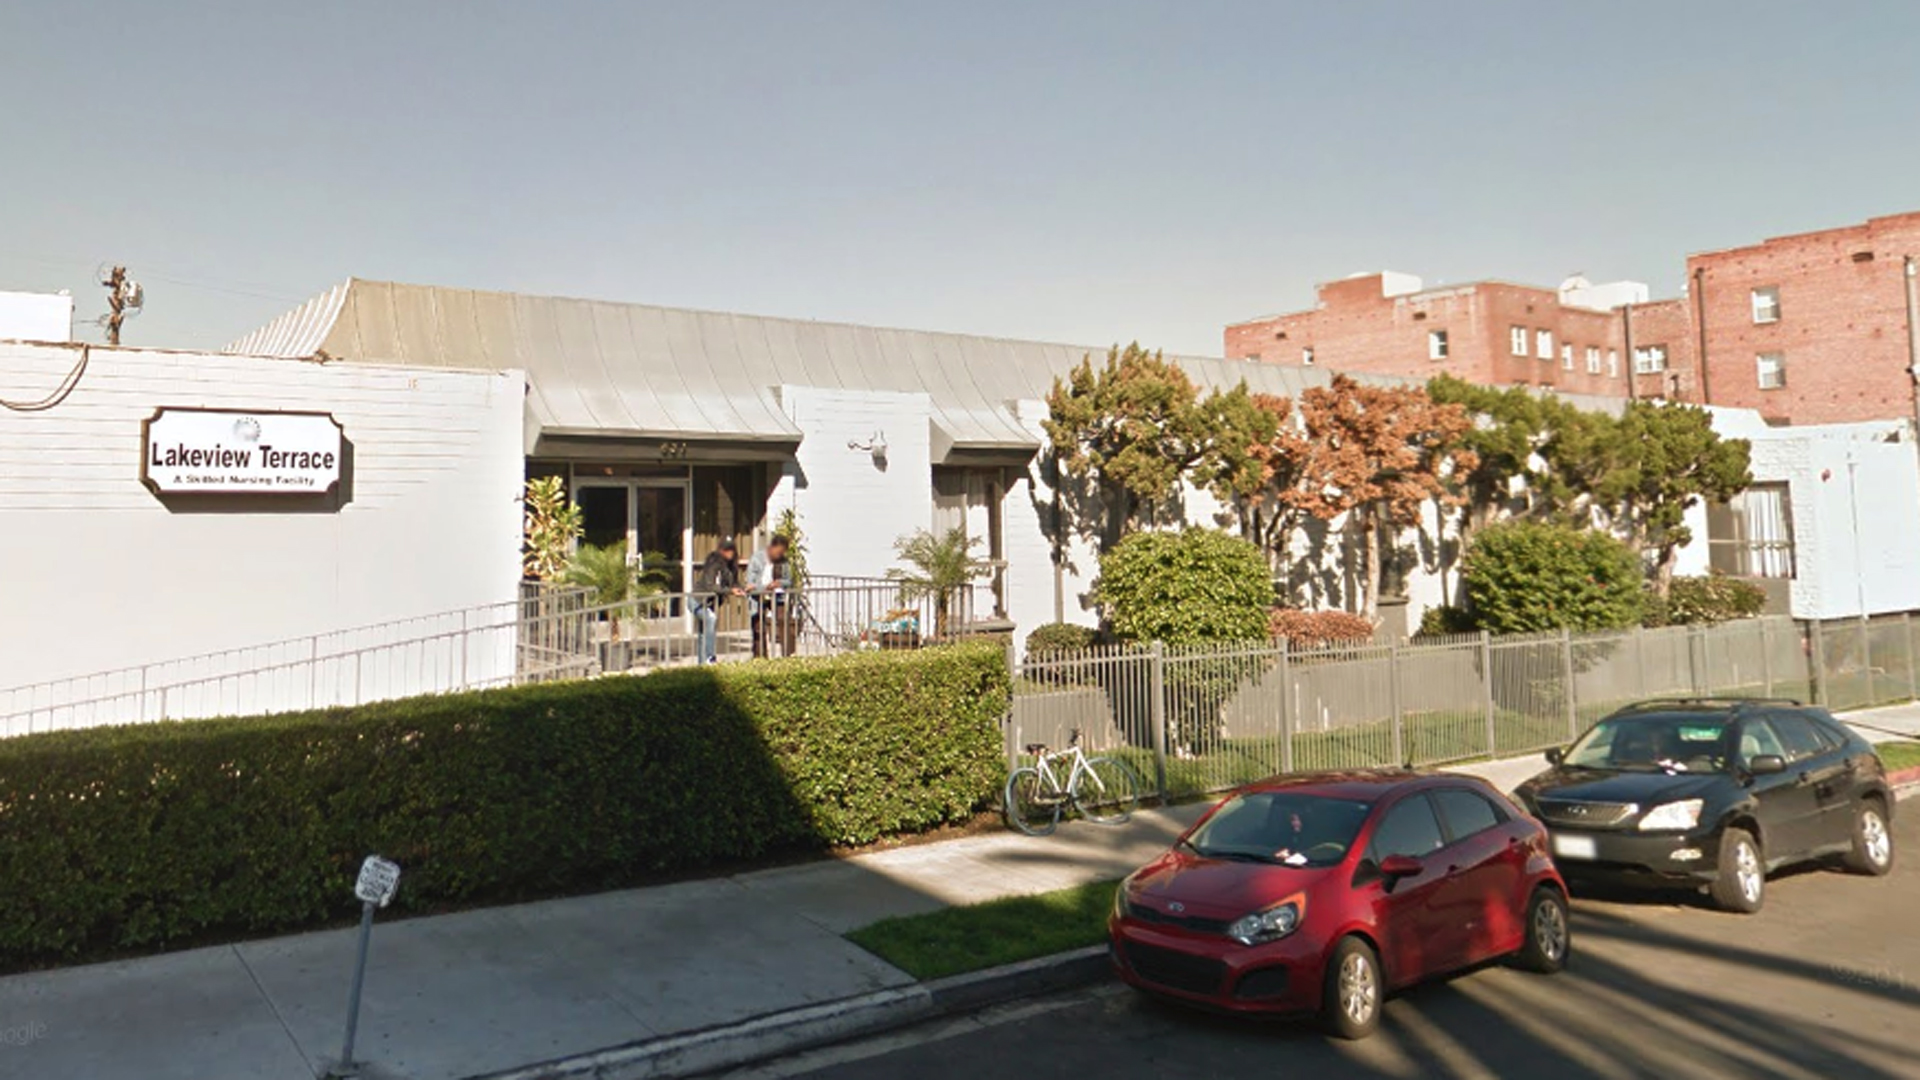 The Lakeview Terrace Skill Nursing Facility in the Westlake neighborhood of Los Angeles is seen in a Google Maps Street View image from January 2017.